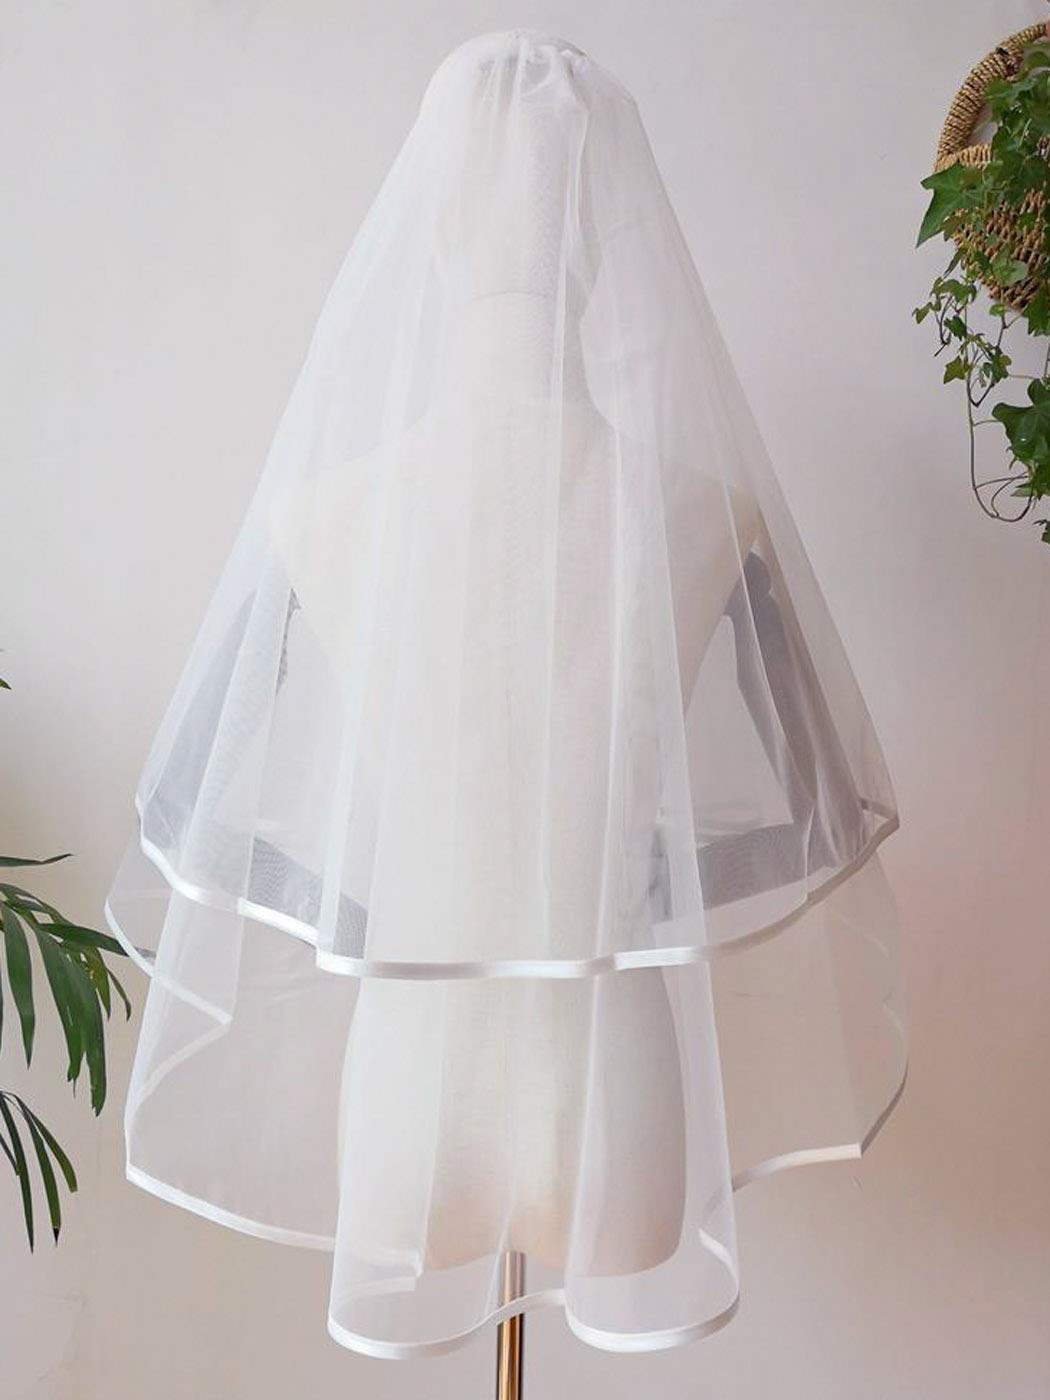 Yean 2 Tiers Bride Wedding Veil Short Elbow Length Bridal Tulle with Ribbon Edge and Comb (25.6/33.5 Inch) (White)